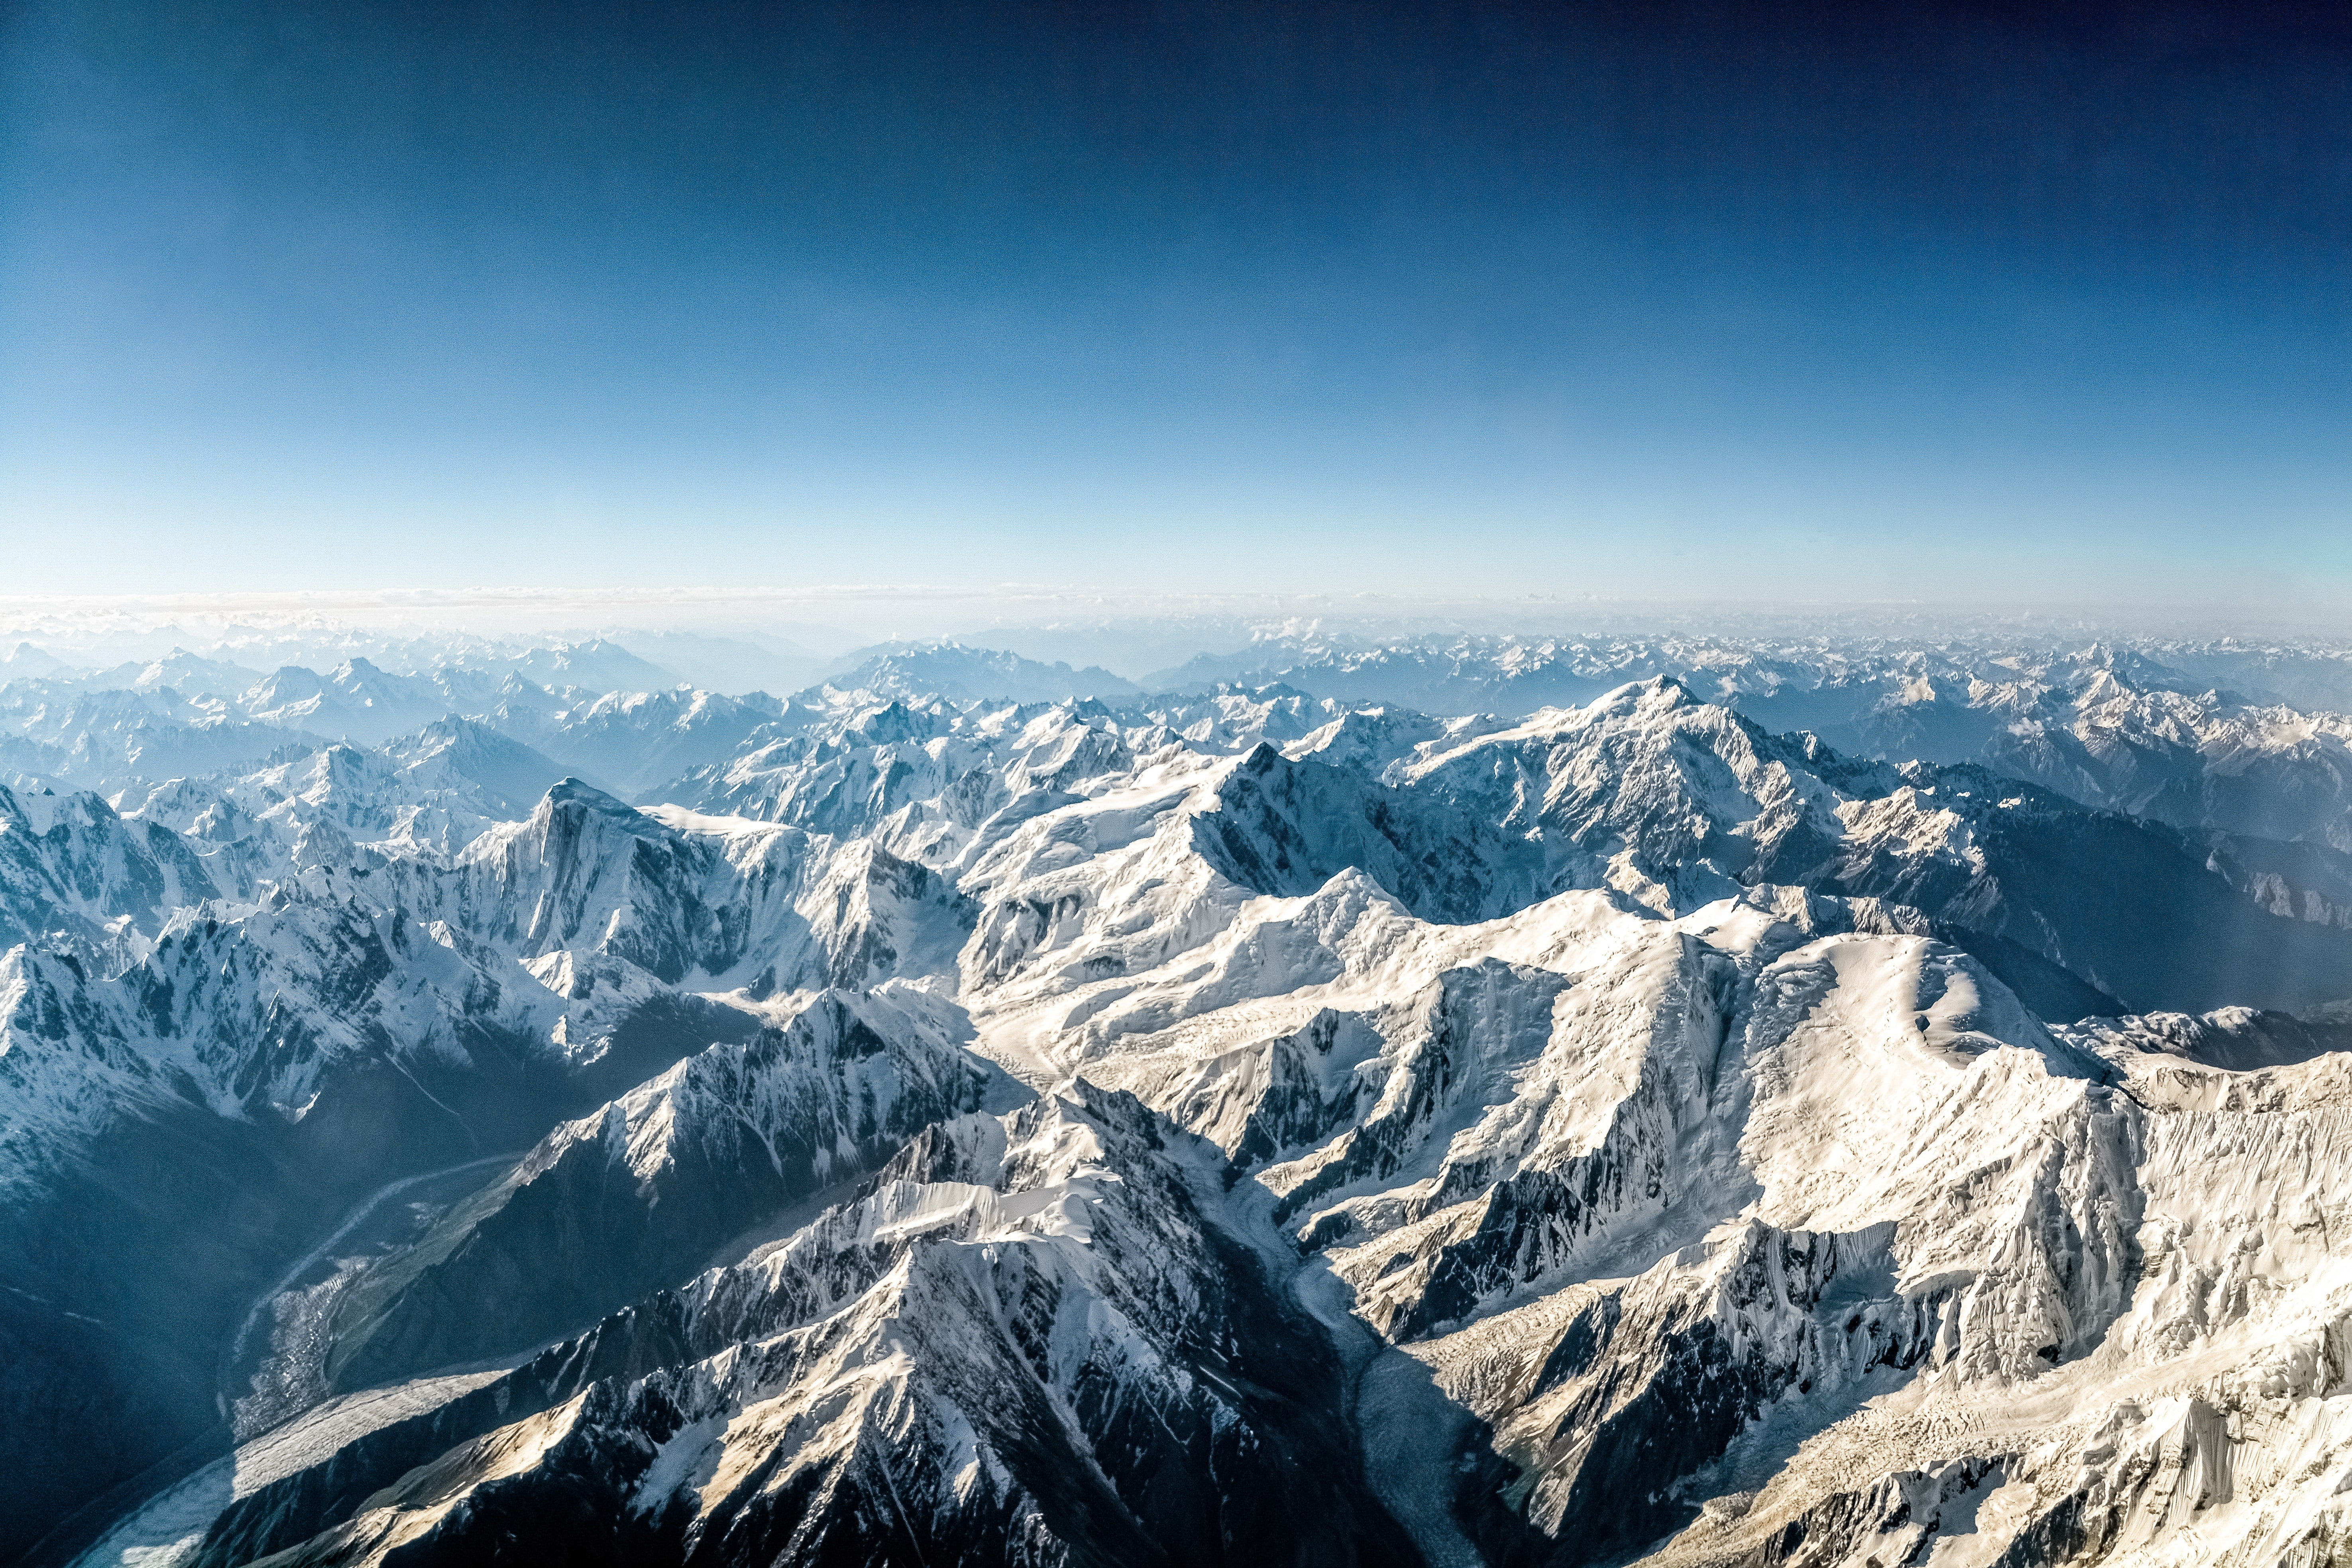 A wide vista of the Himalayan mountain landscape